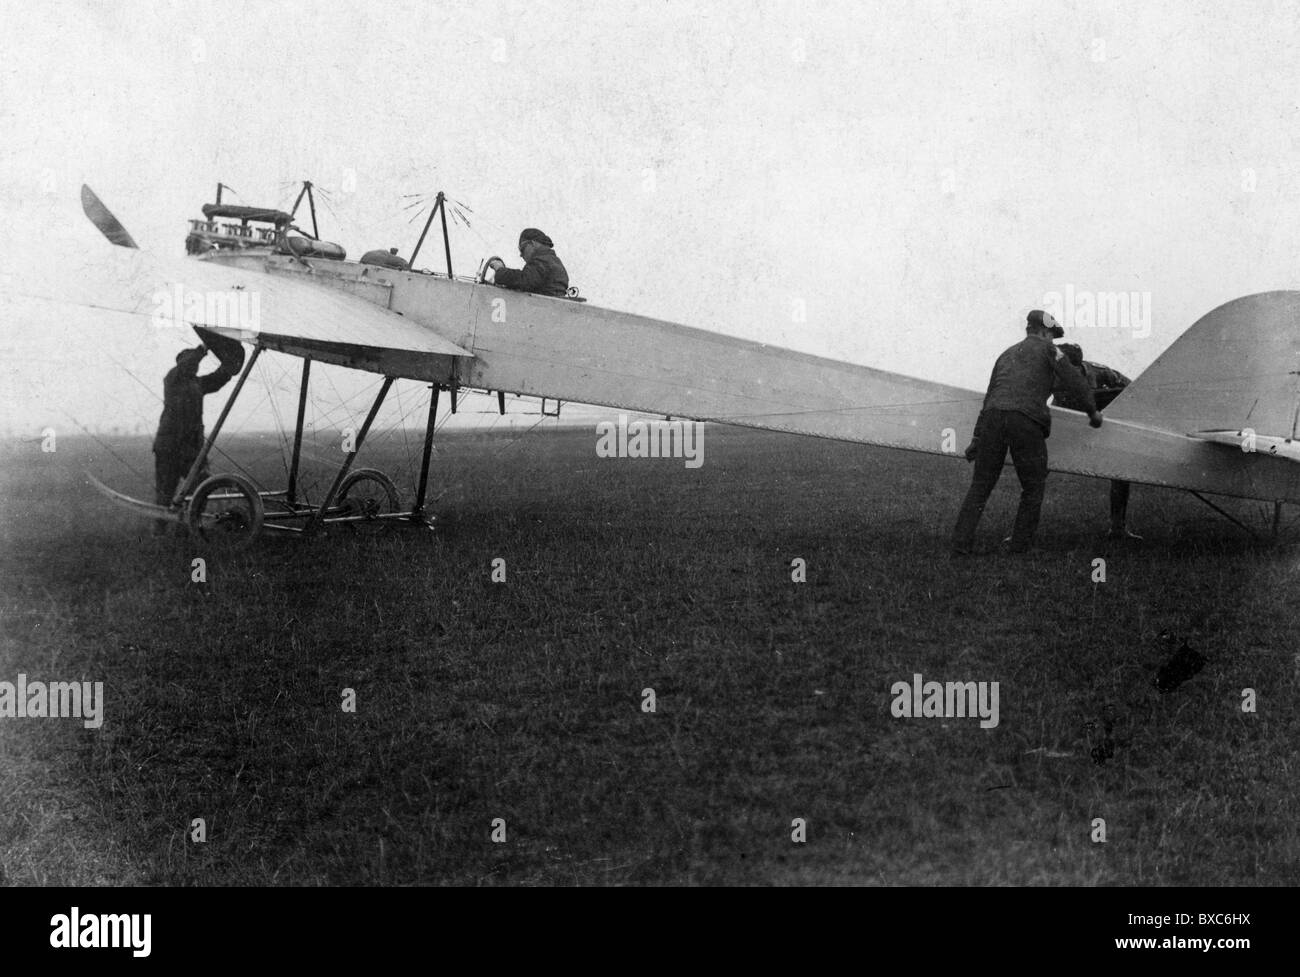 military, Germany, Bavaria, airforce, Royal Bavarian Flying Corps, military aircraft, Oberwiesenfeld, Munich, 1910/1911, - Stock Image